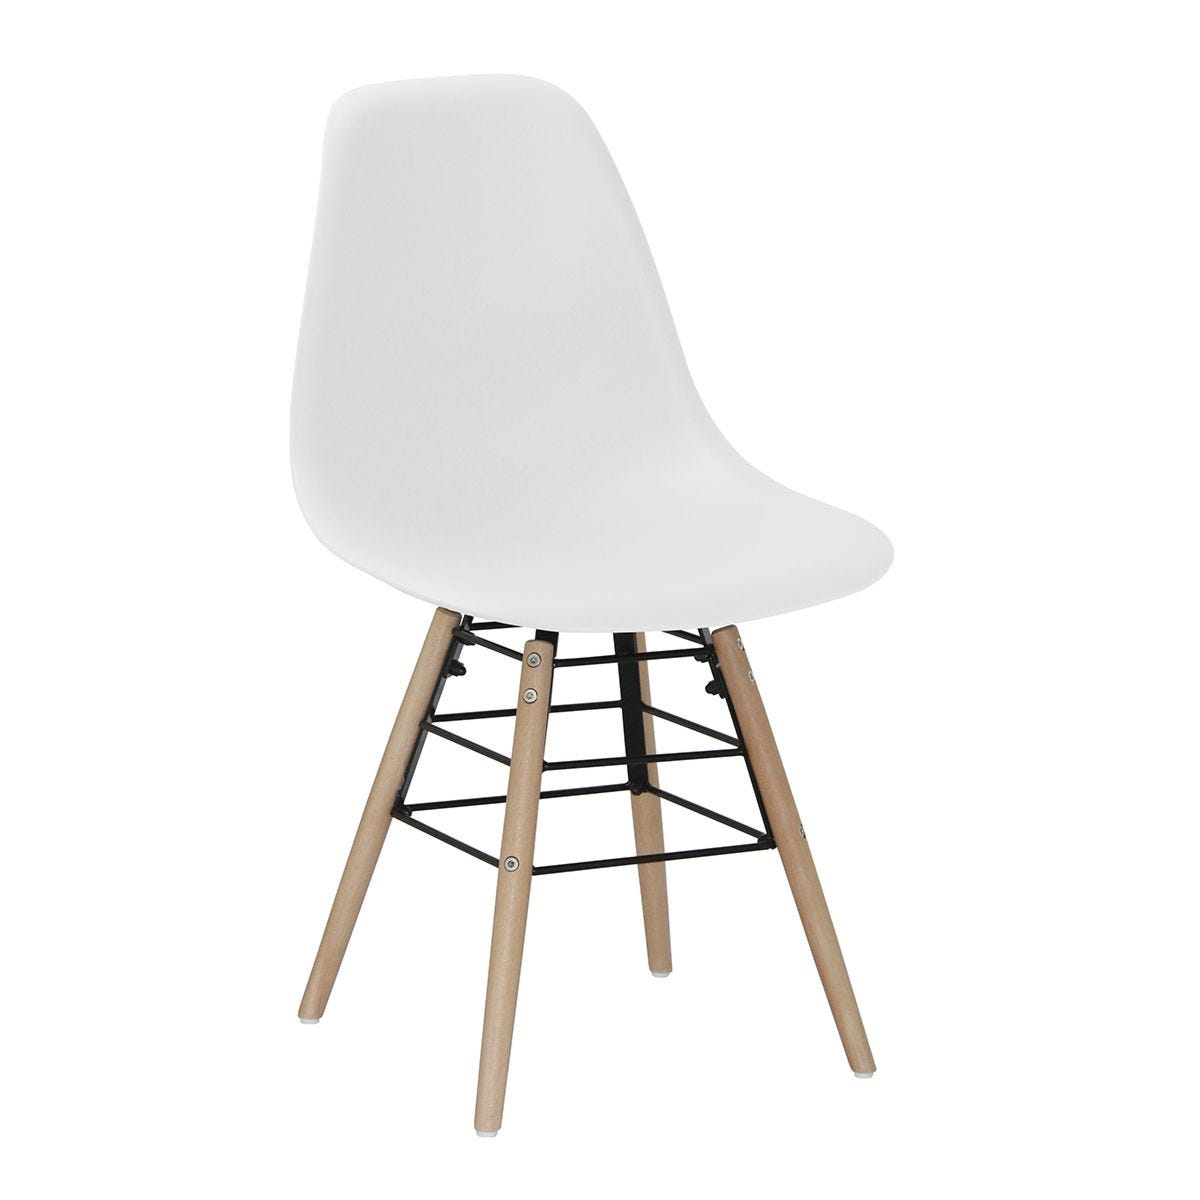 Set Of 4 Lilly Plastic Chairs with Solid Beech Legs - White